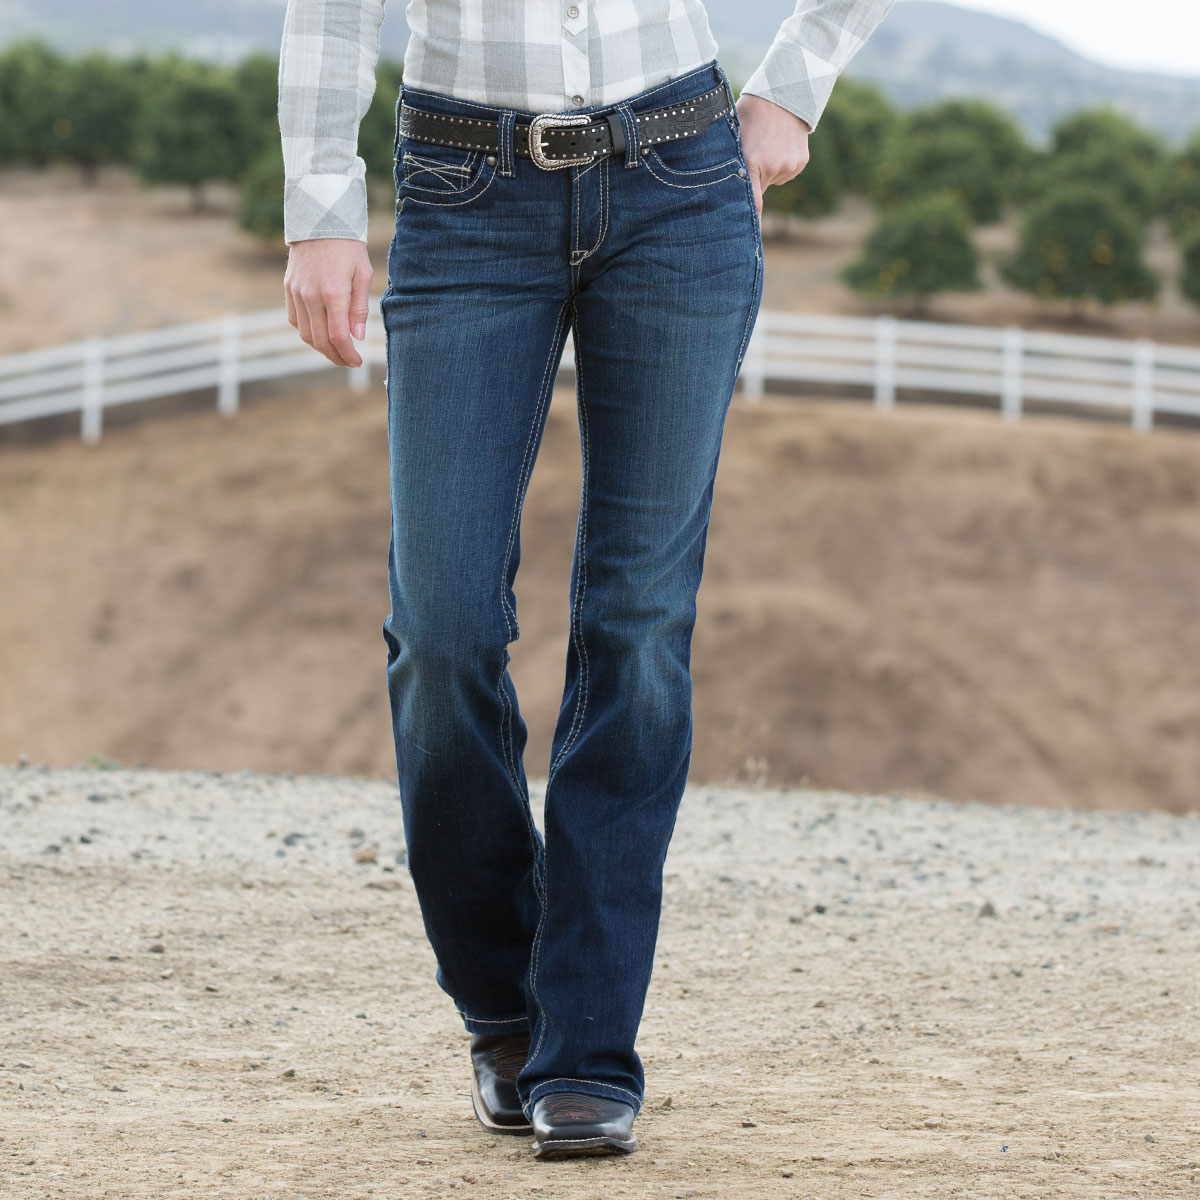 Ariat Women's REAL Riding Jeans- Spitfire